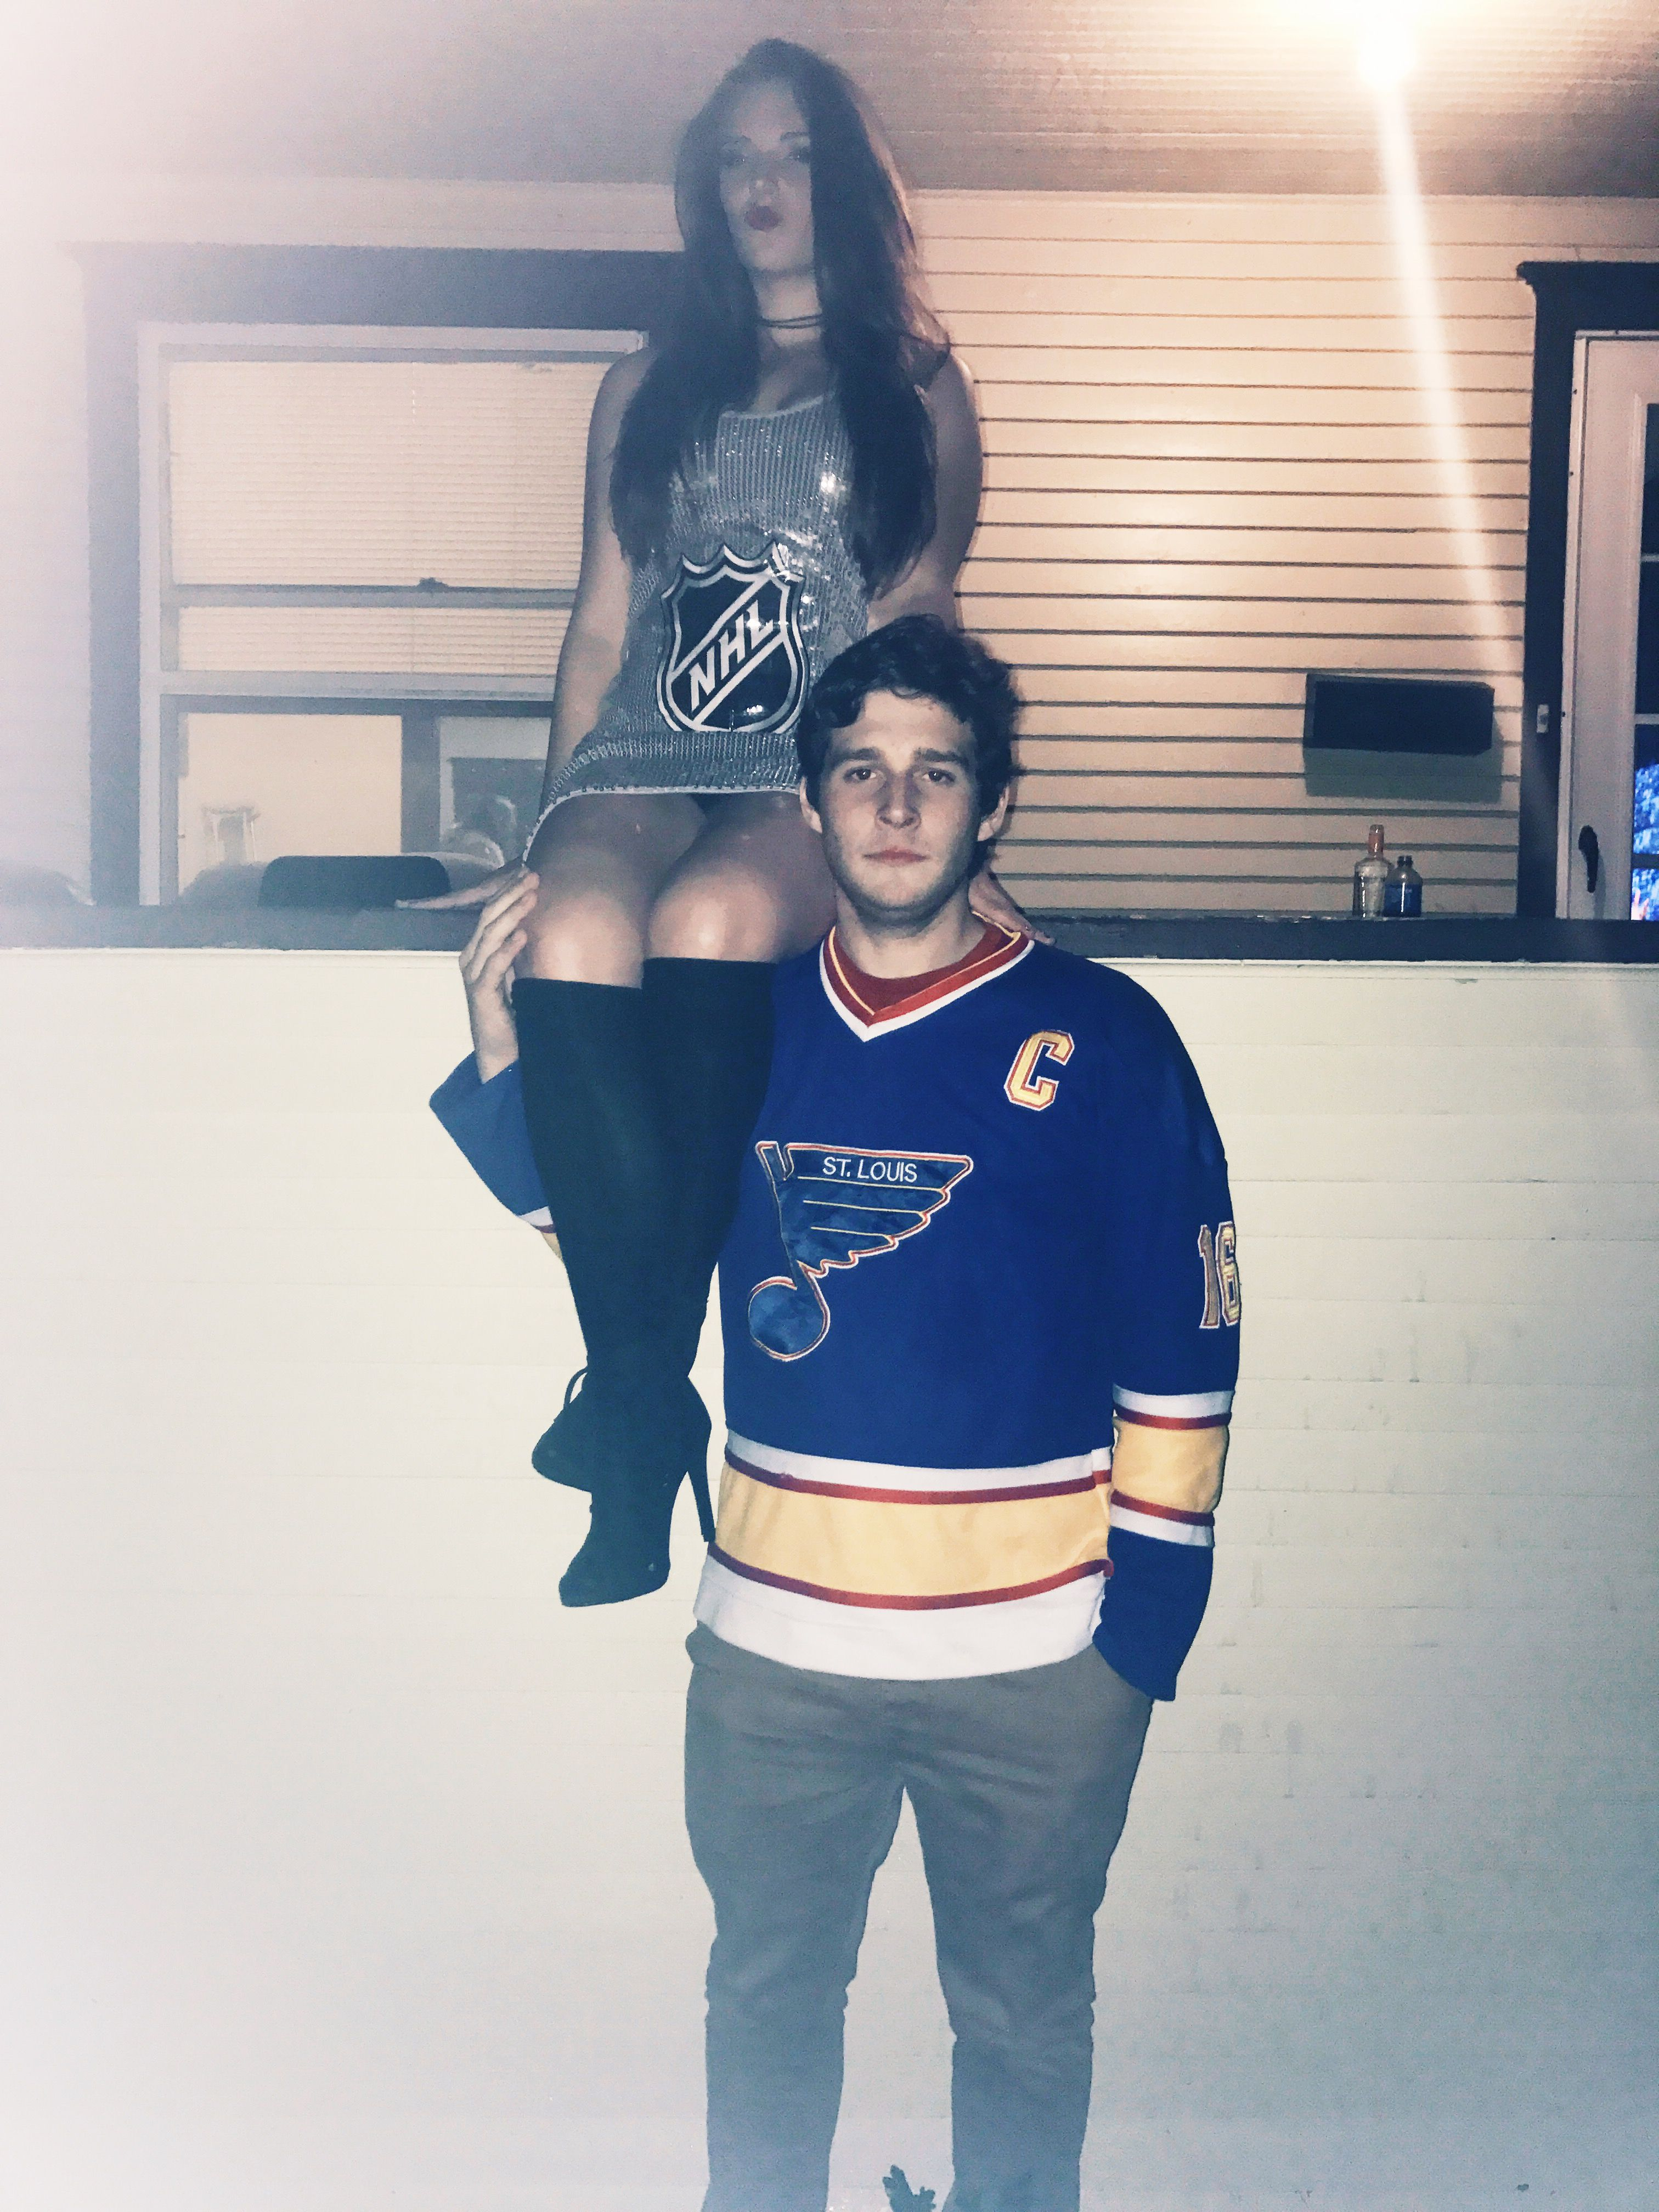 Stanley Cup And Hockey Player Couples Costume Couples Costumes Halloween Costumes Friends Stanley Cup Costume